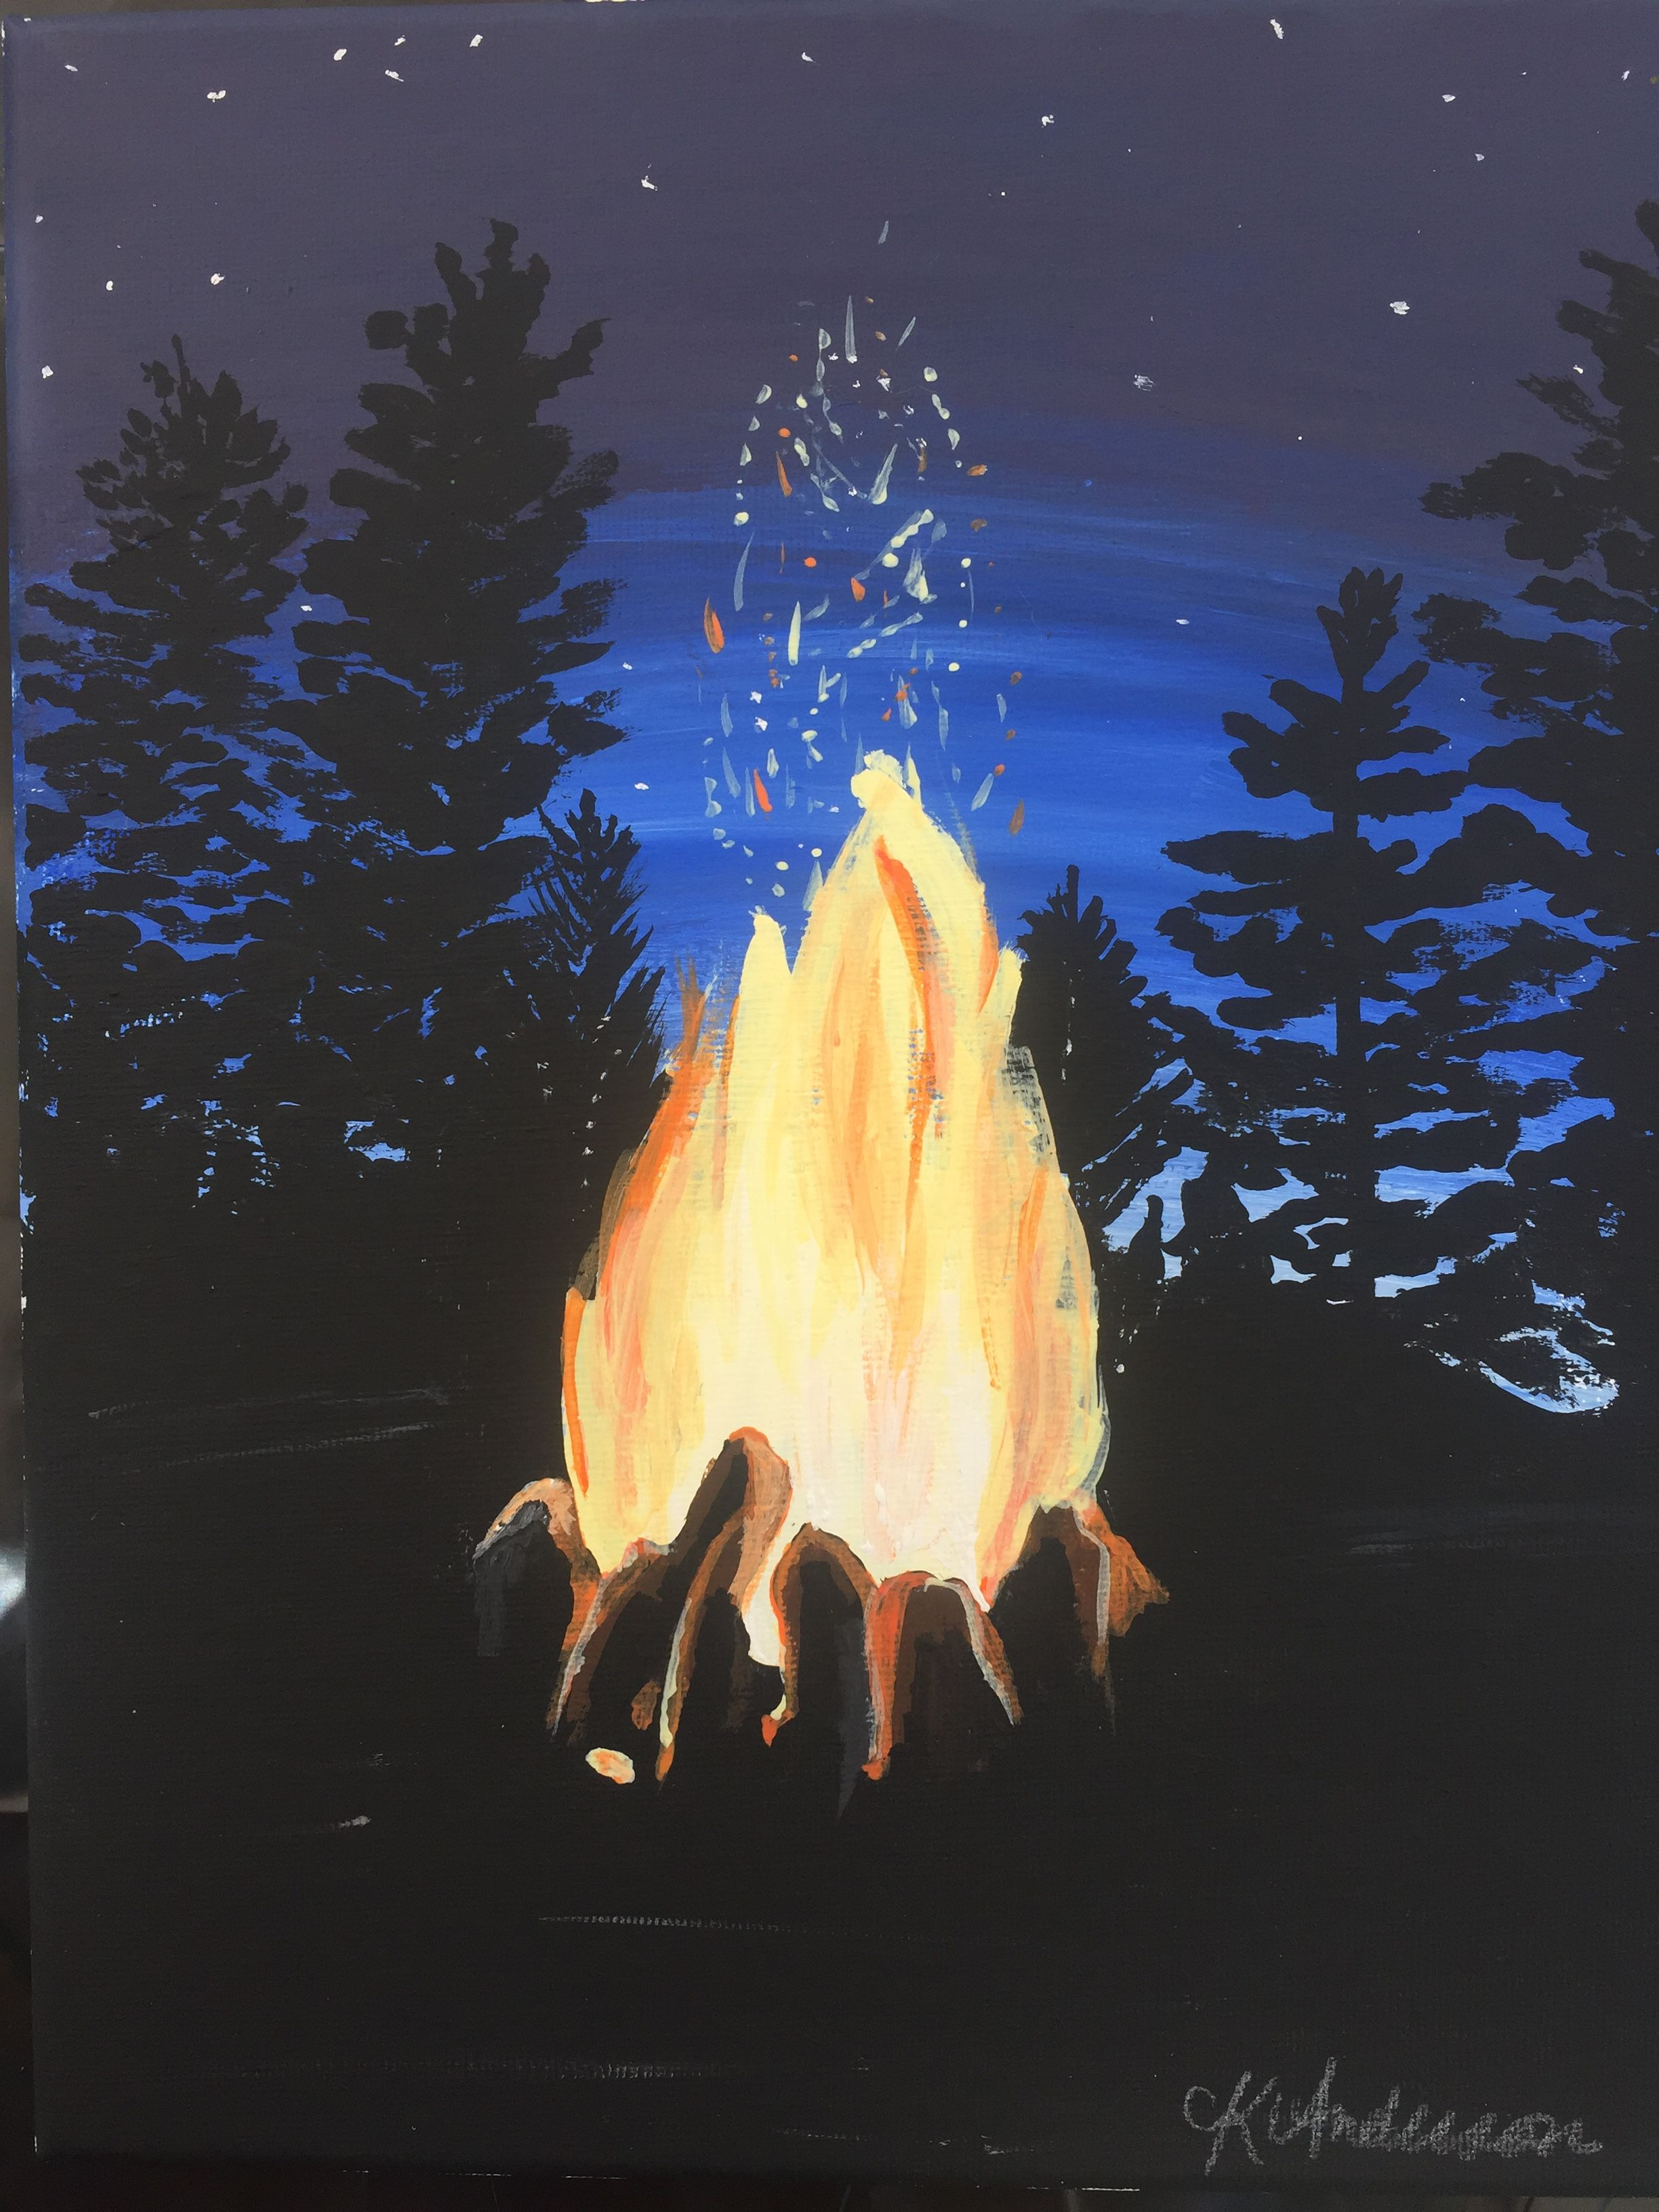 Campfire acrylic painting | Landscapes in 2019 | Painting ... Campfire Painting